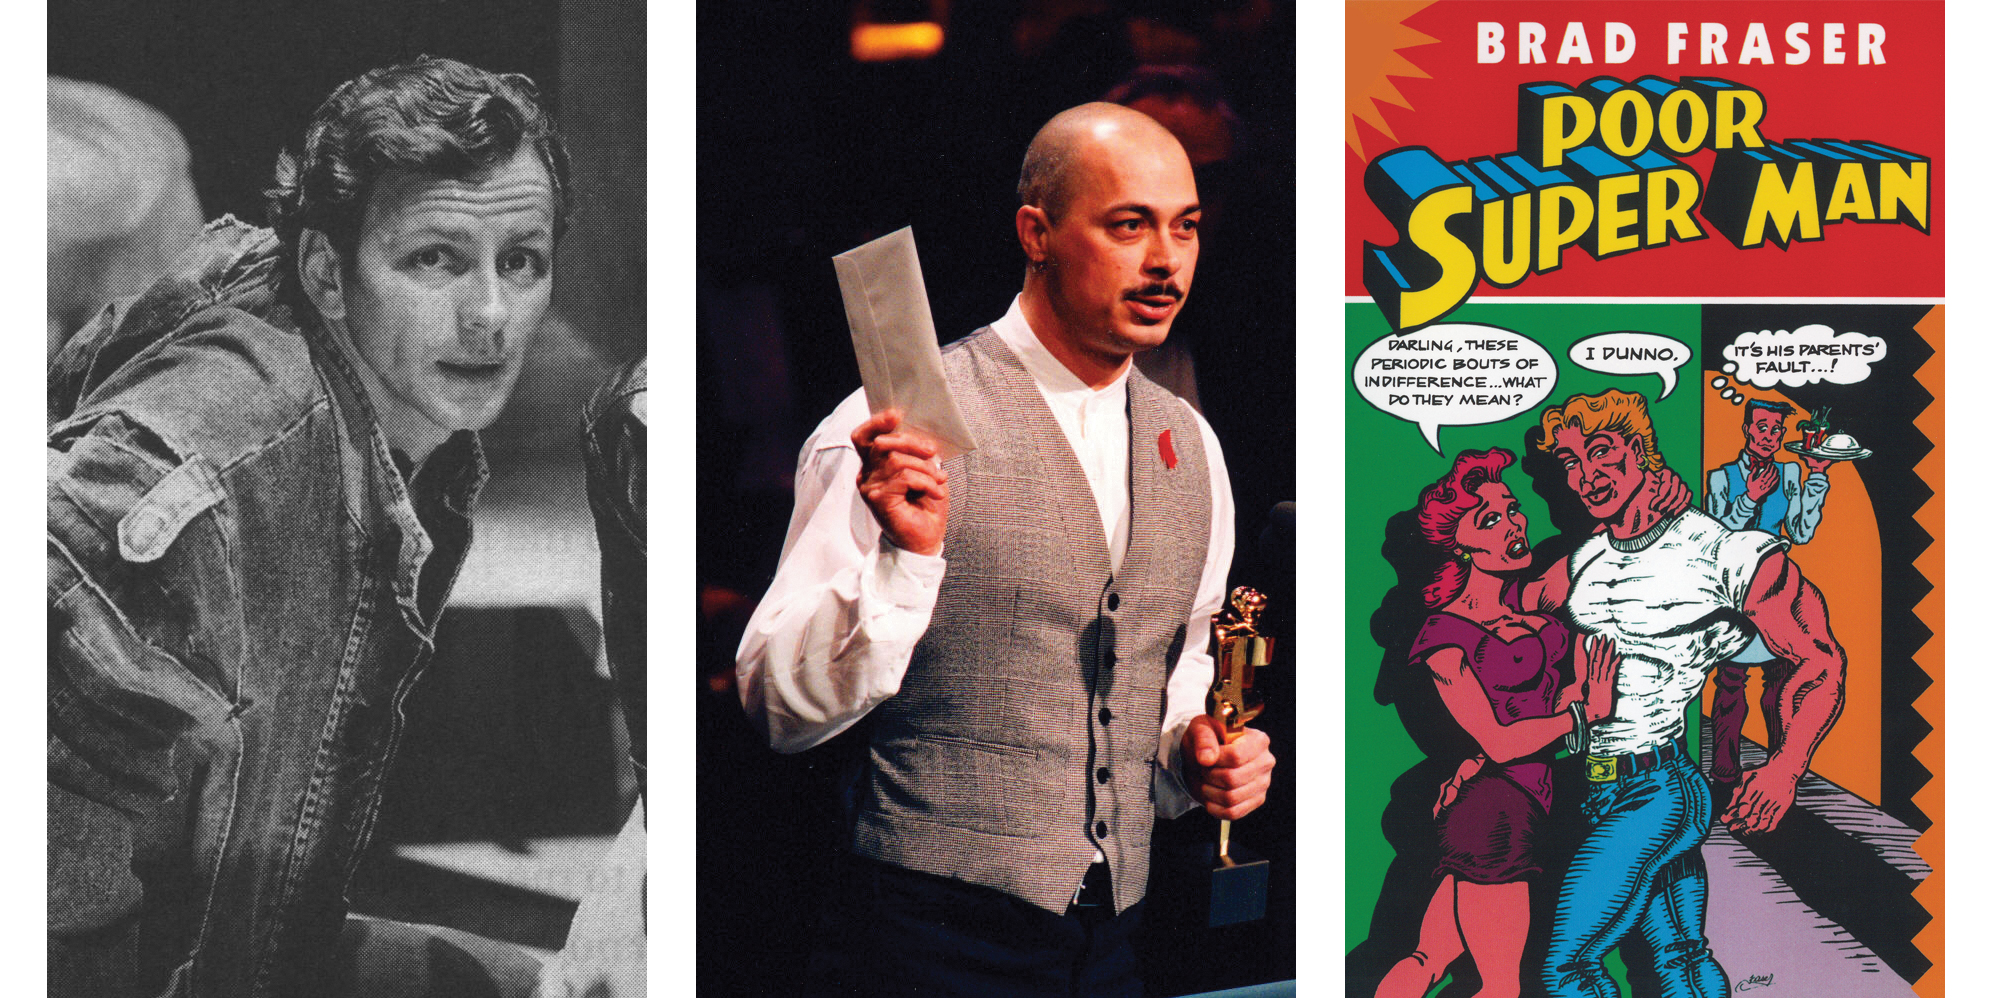 A photo of Brent Carver in Denys Arcand's 1993 film Love and Human Remains. A photo of Brad Fraser accepting a Genie Award. An illustration of the title of Brad Fraser's 1994 play Poor Super Man.